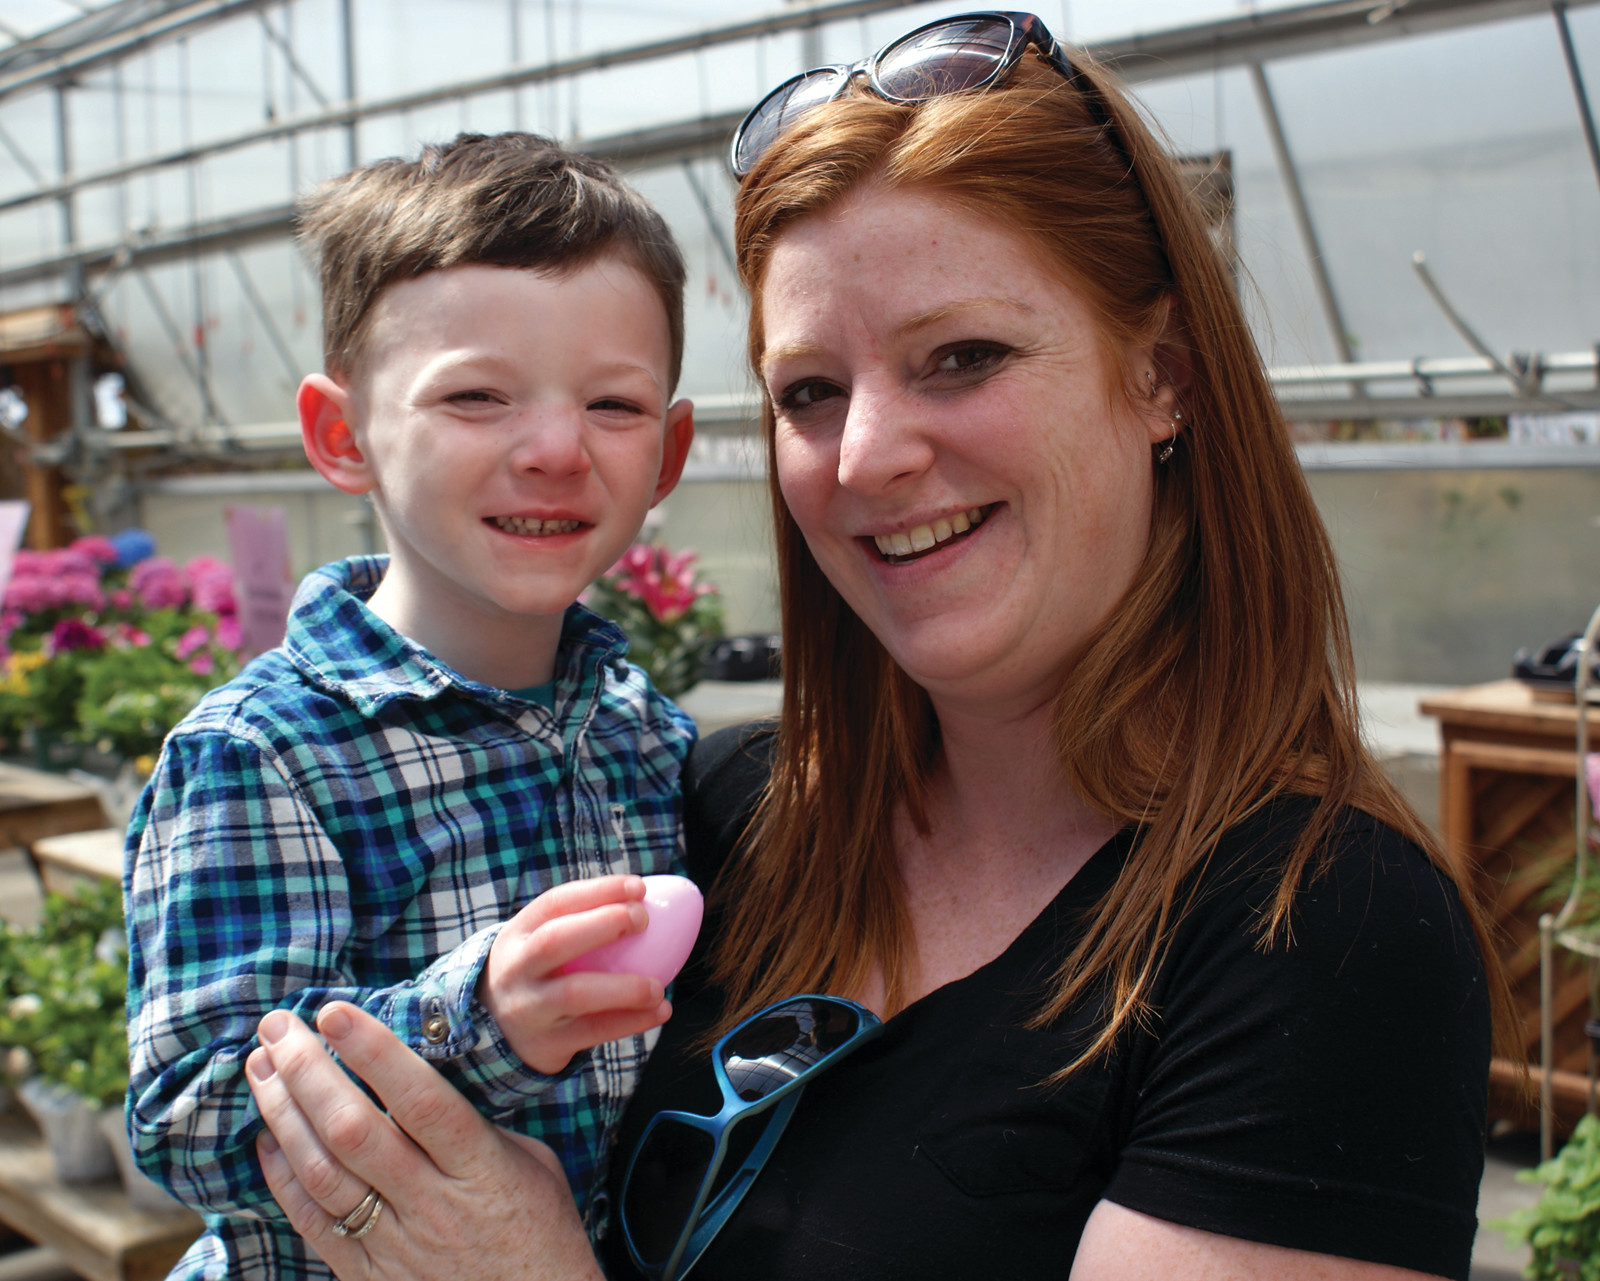 ALL SMILES: Pictured is Brayden Marcoux, age 3, with his mother, Aubrie, inside the Confreda Farms Greenhouse after the Annual Confreda Farms Easter Egg Hunt on April 15.